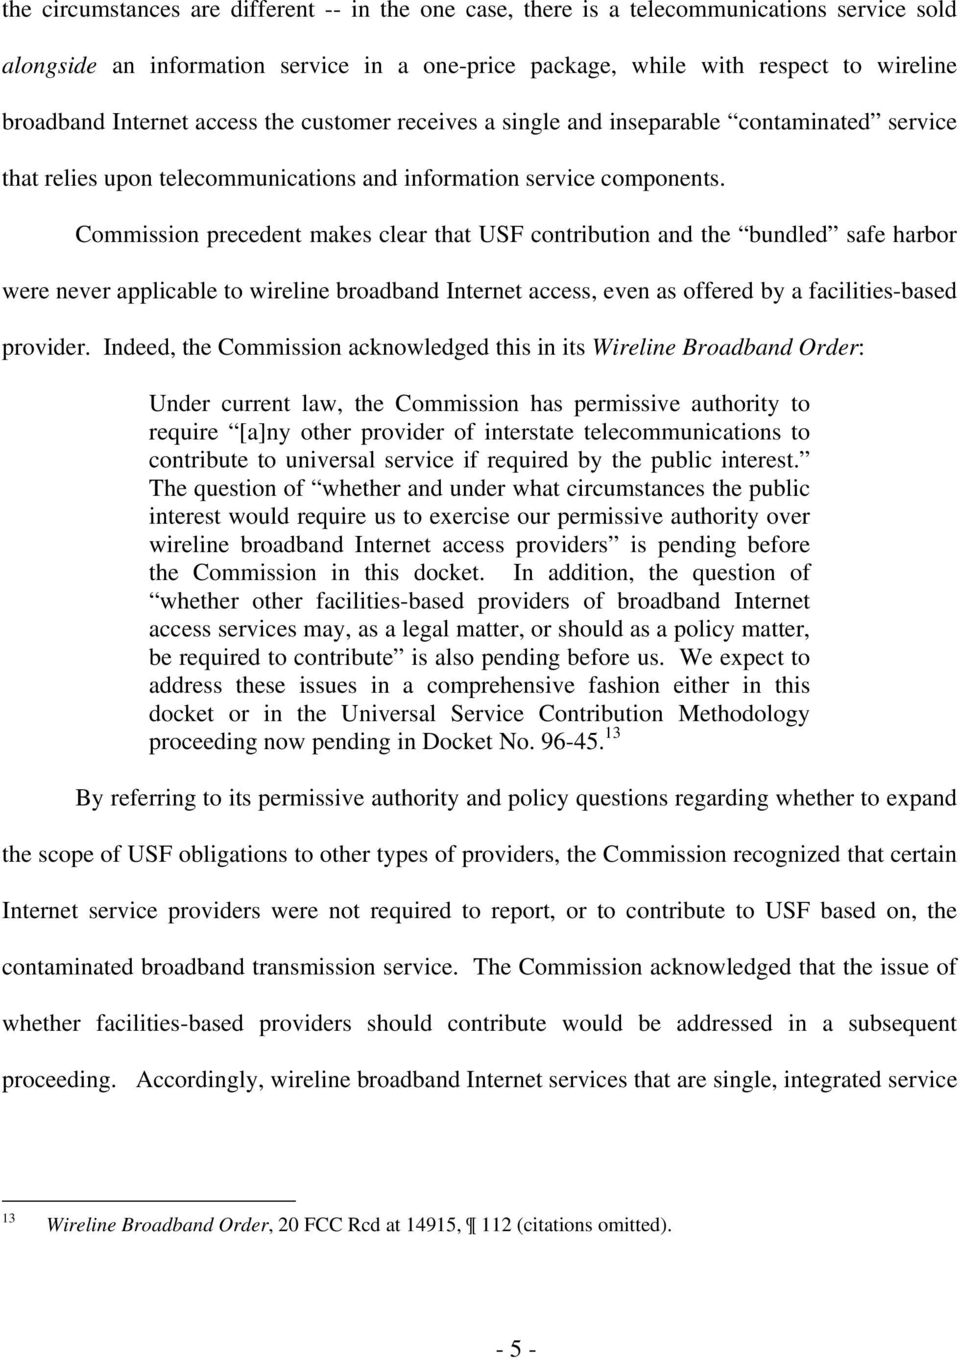 Commission precedent makes clear that USF contribution and the bundled safe harbor were never applicable to wireline broadband Internet access, even as offered by a facilities-based provider.